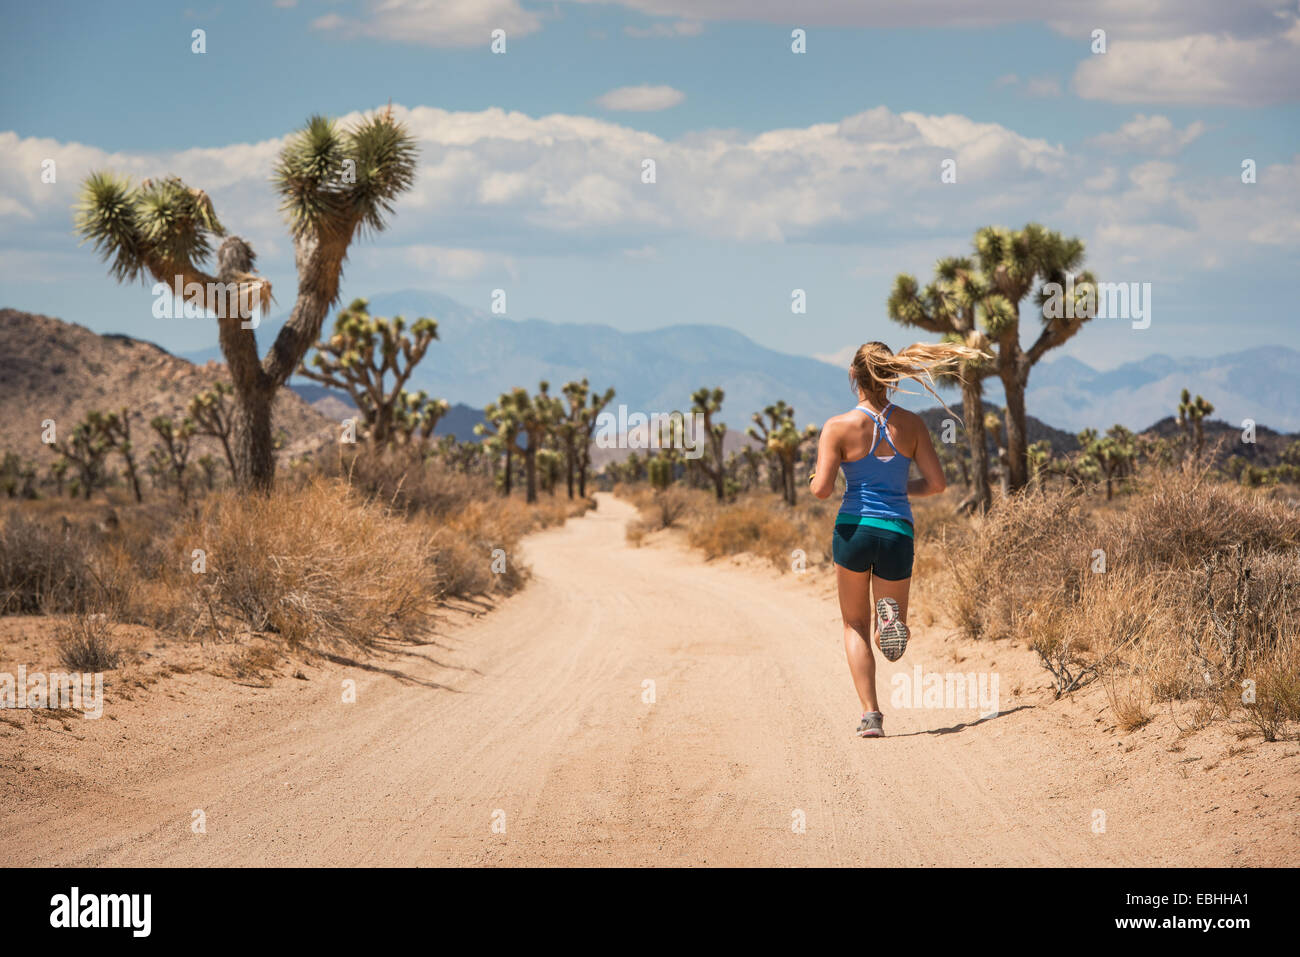 Frau rennt, Joshua Tree Nationalpark, Kalifornien, USA Stockbild